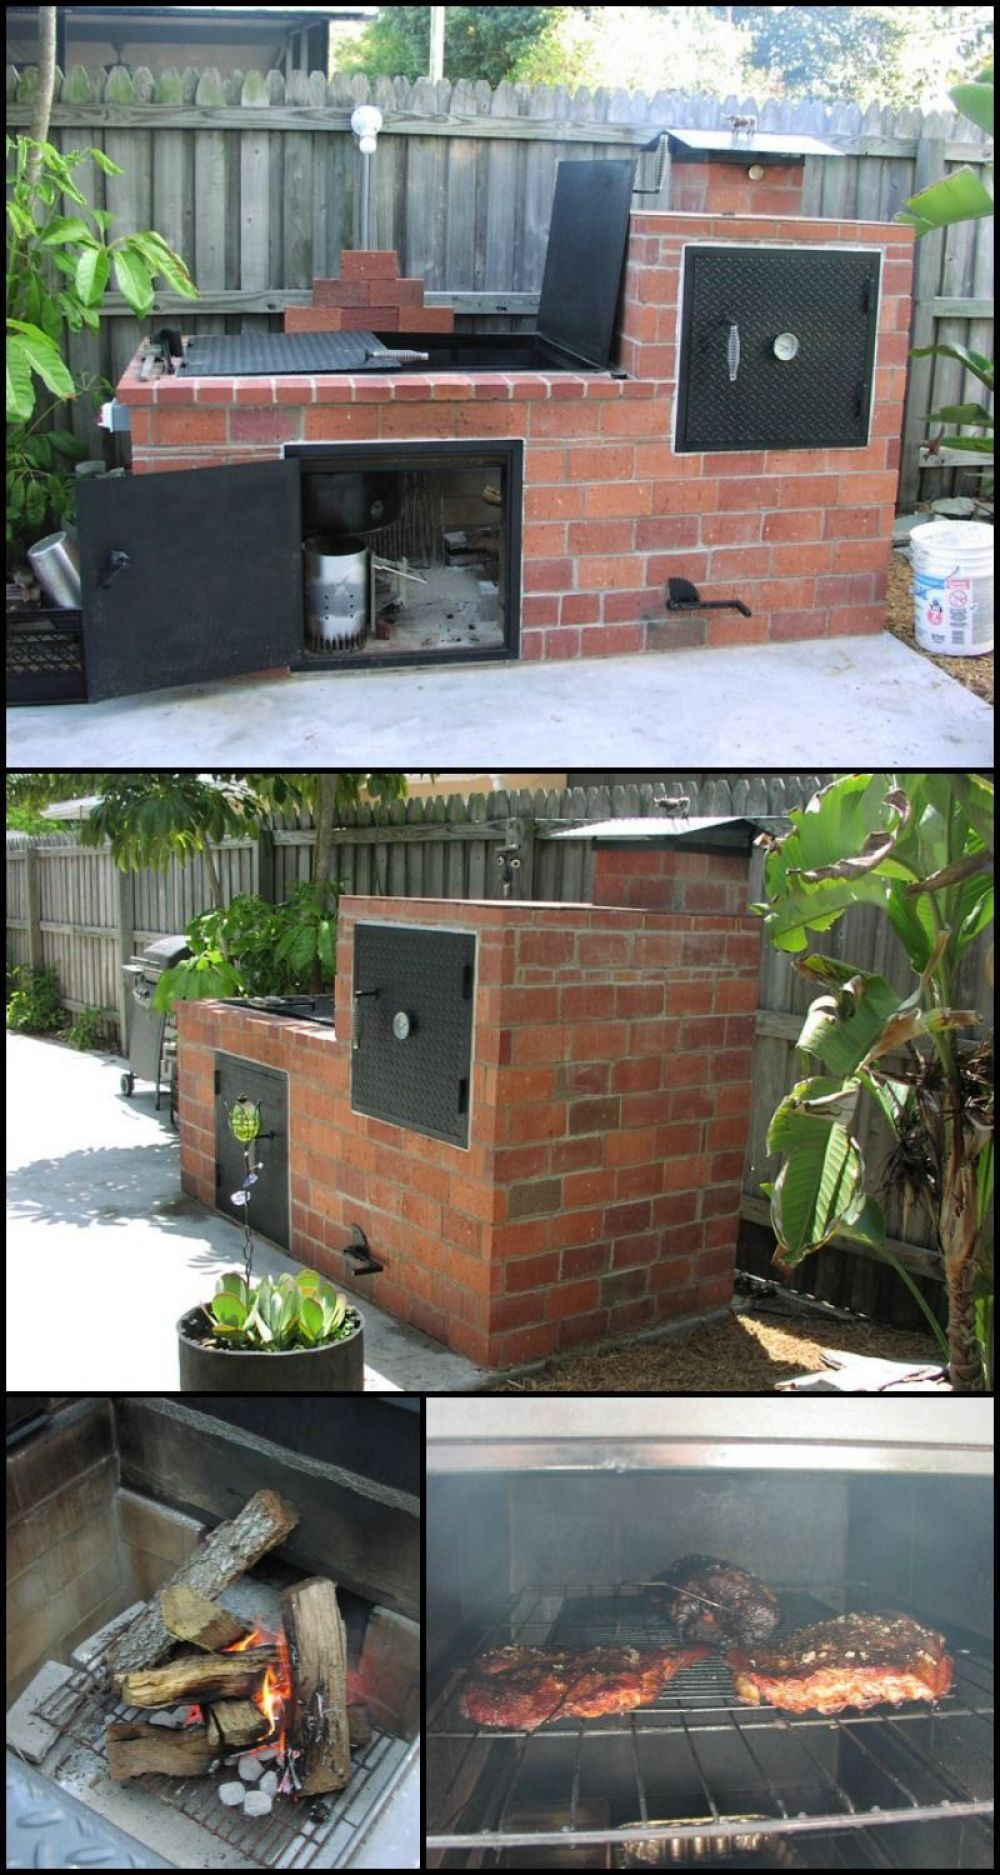 25 best diy backyard brick barbecue ideas in 2020 brick bbq diy outdoor kitchen on outdoor kitchen bbq id=28842